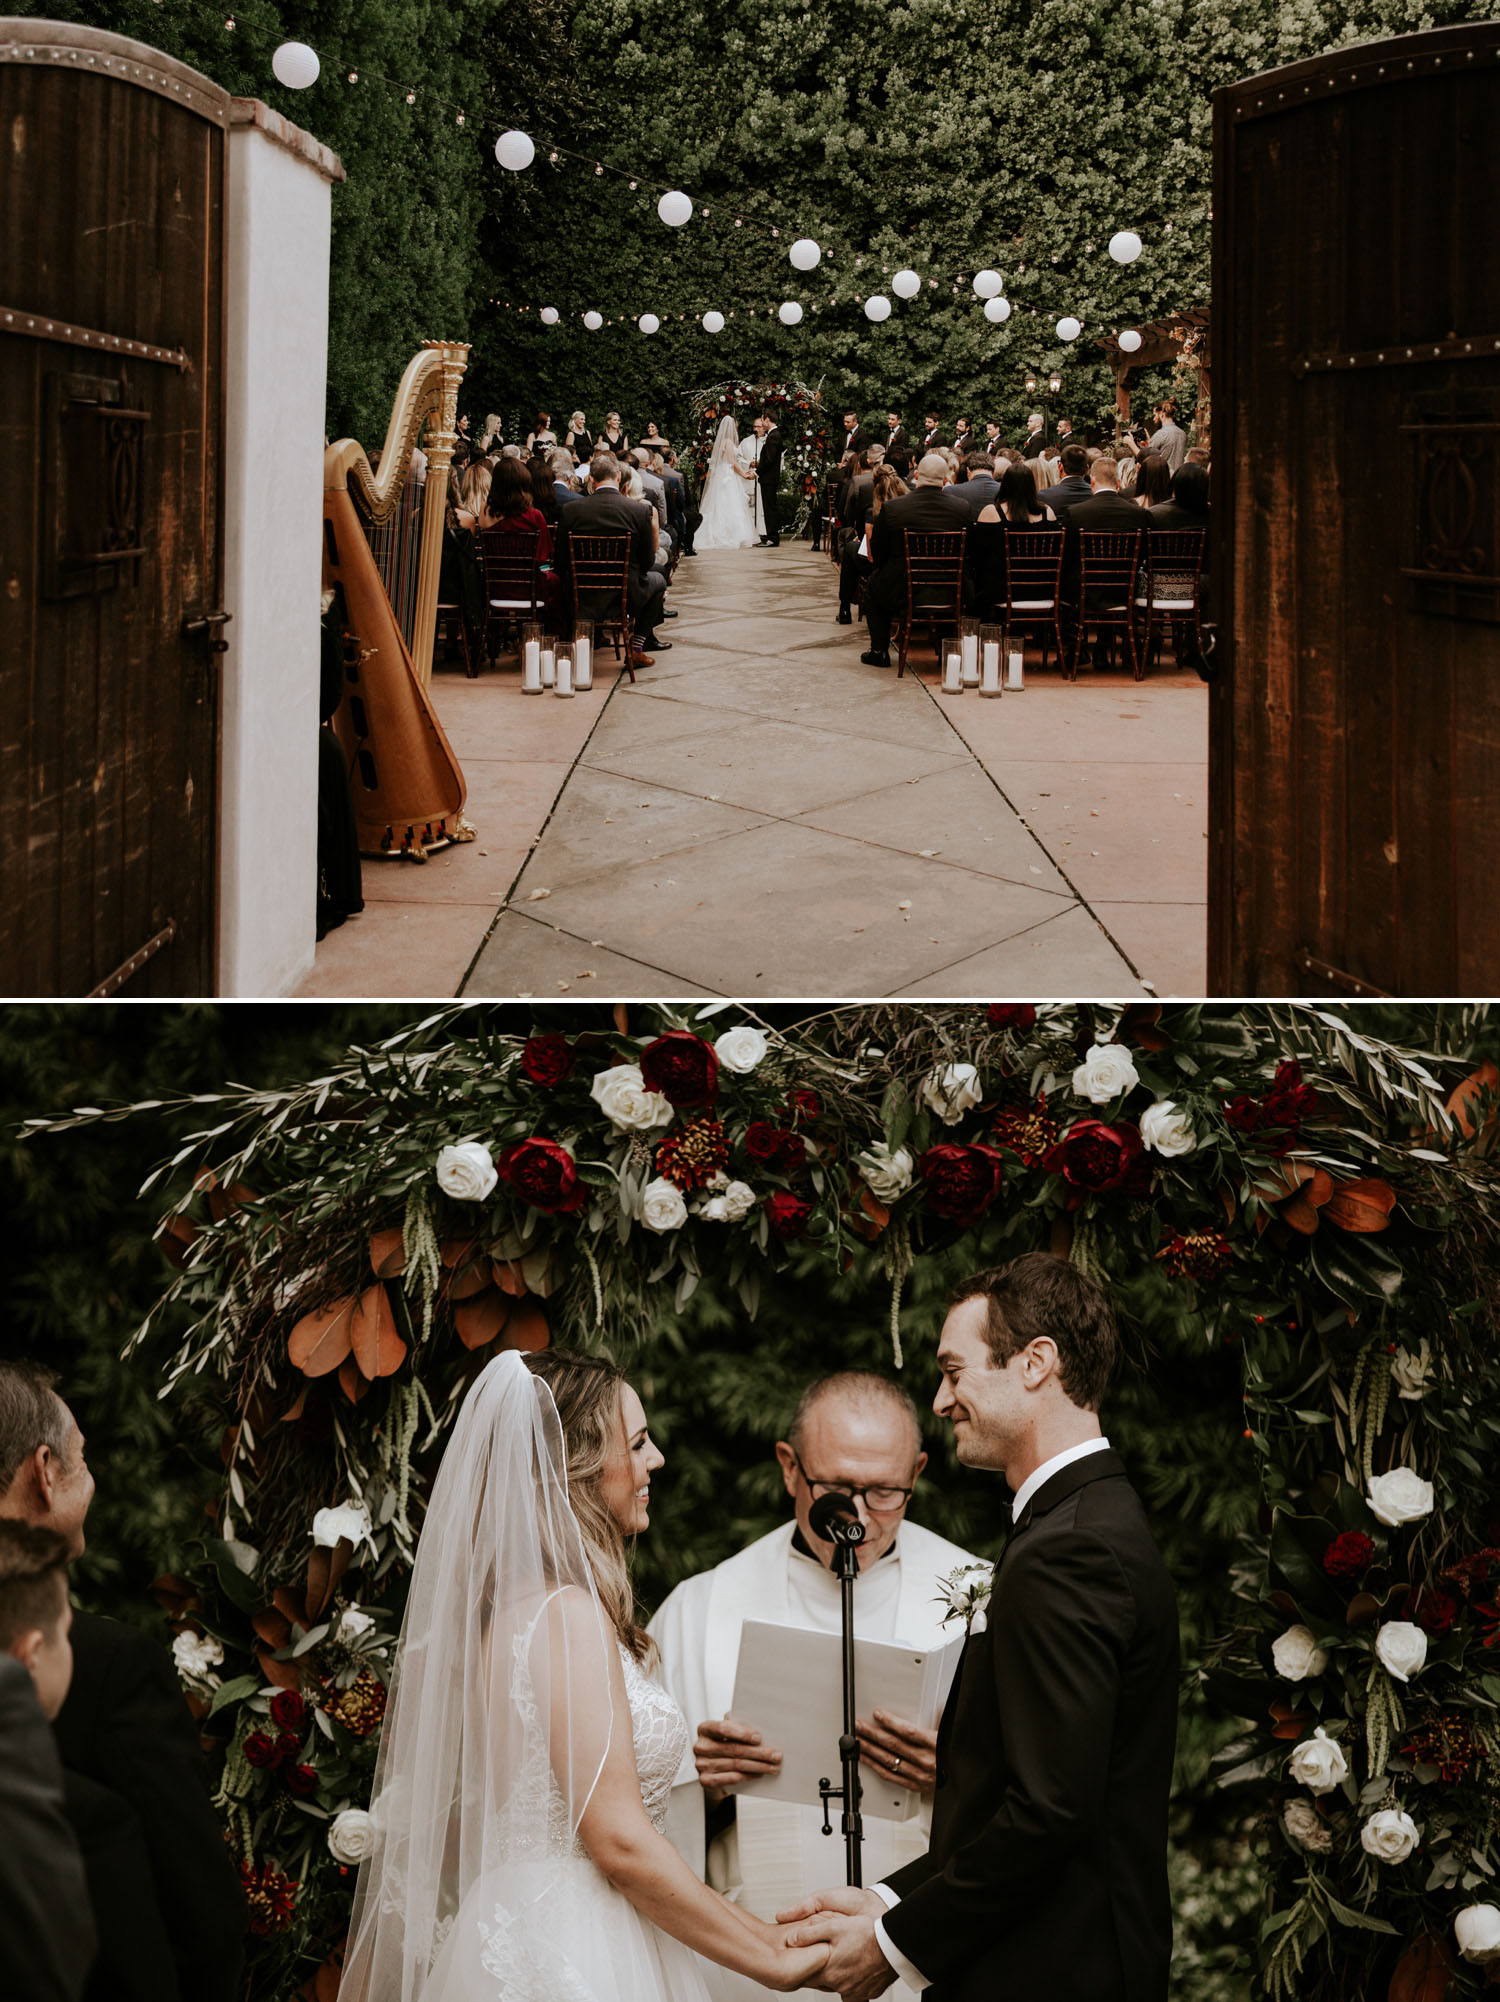 Intimate wedding at Franciscan Gardens in San Juan Capistrano